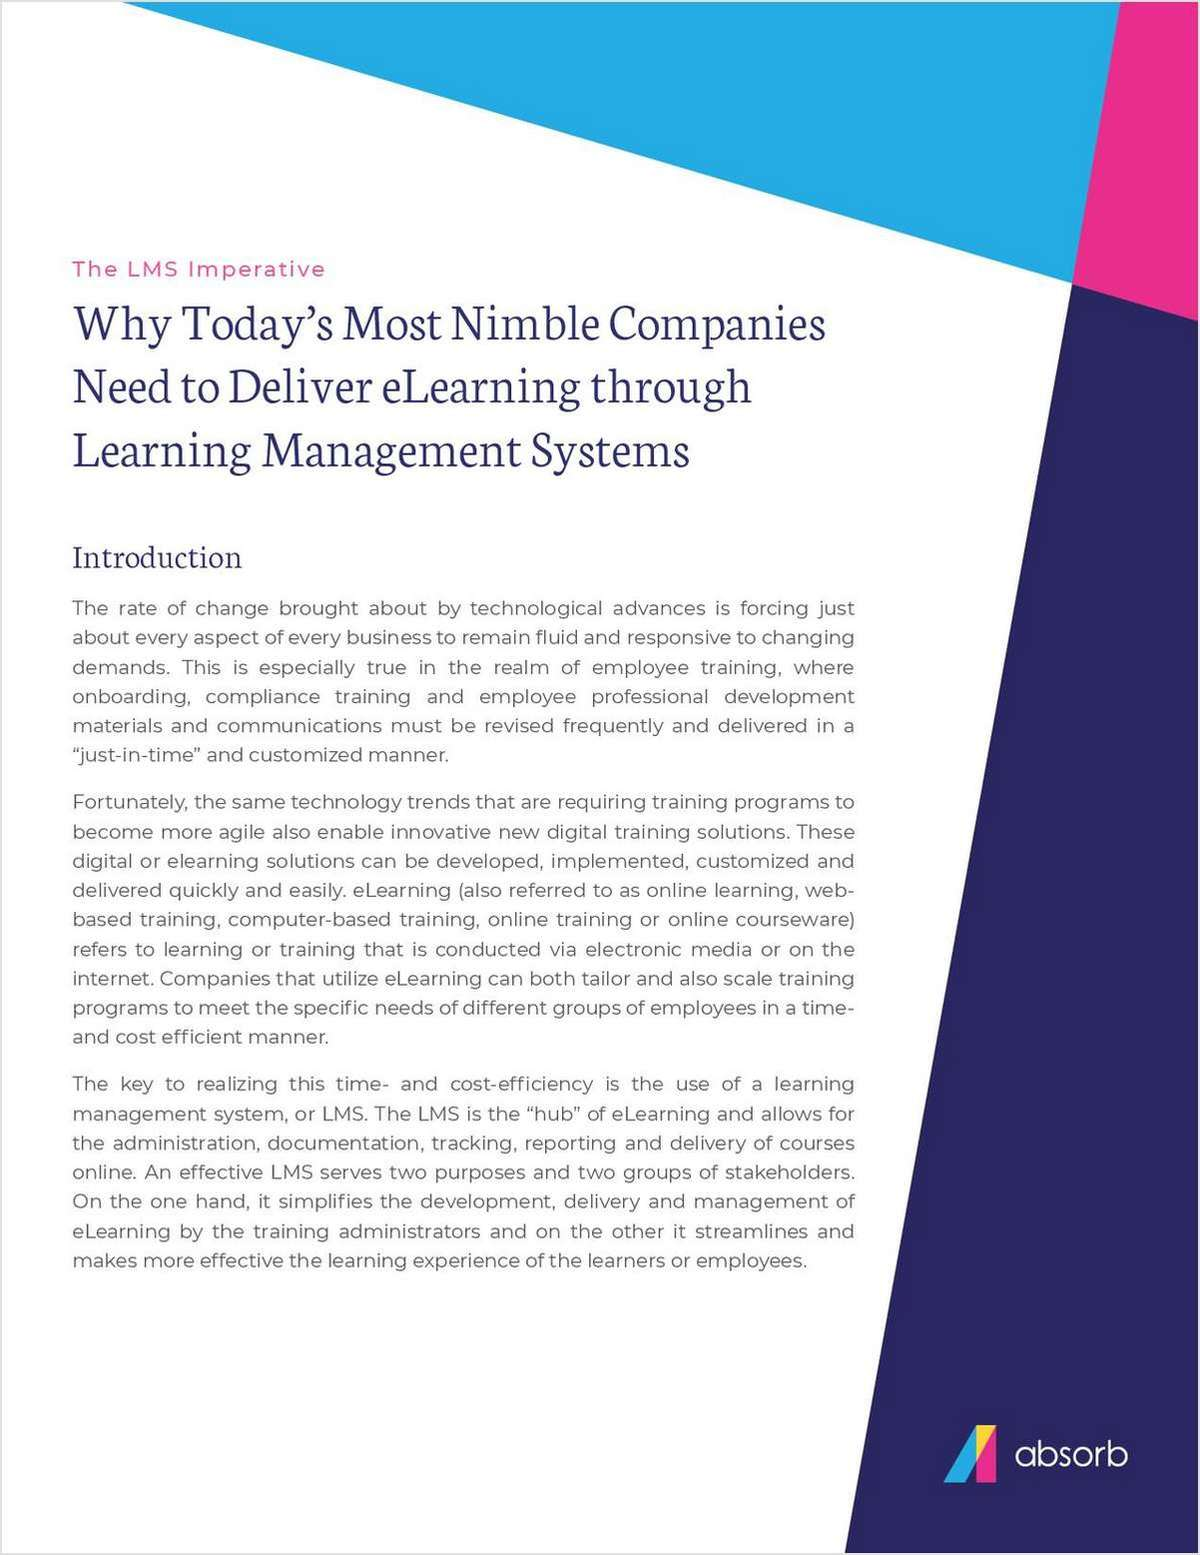 Why Nimble Companies Need to Deliver eLearning Through an LMS